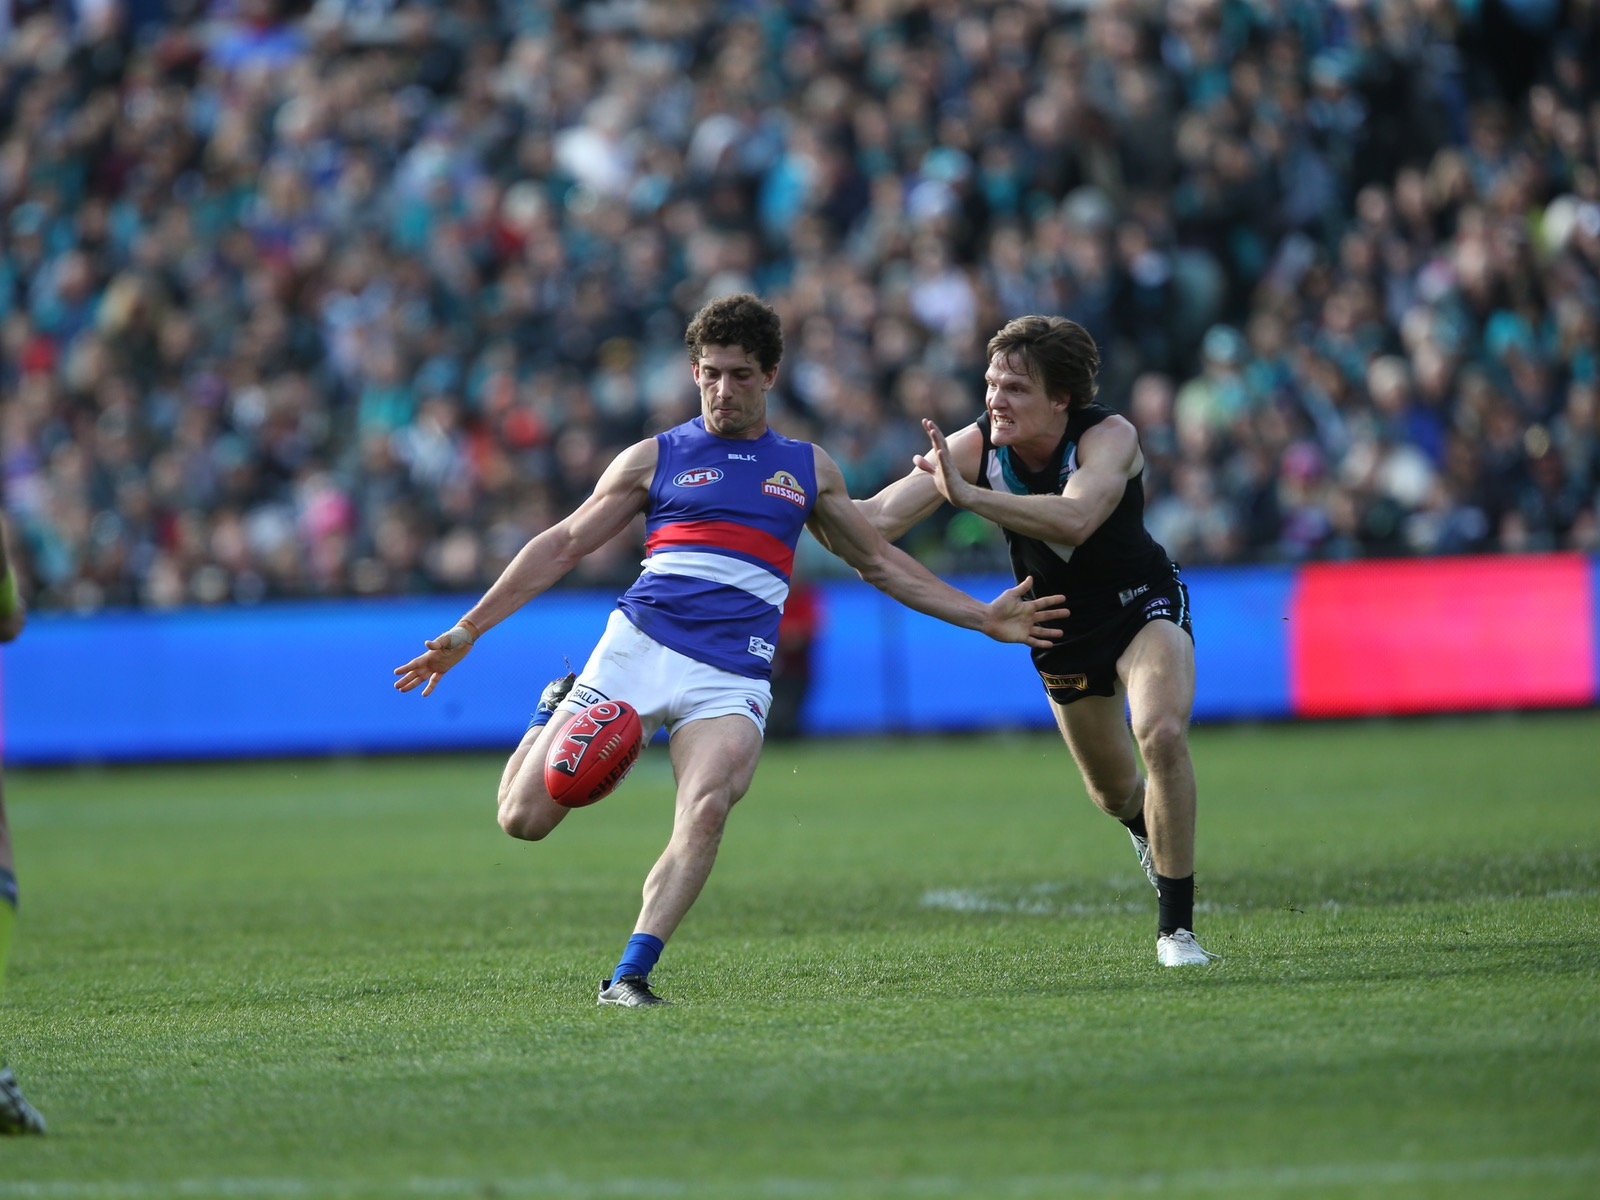 Western Bulldogs vs Port Adelaide - AFL Game (Ballarat)